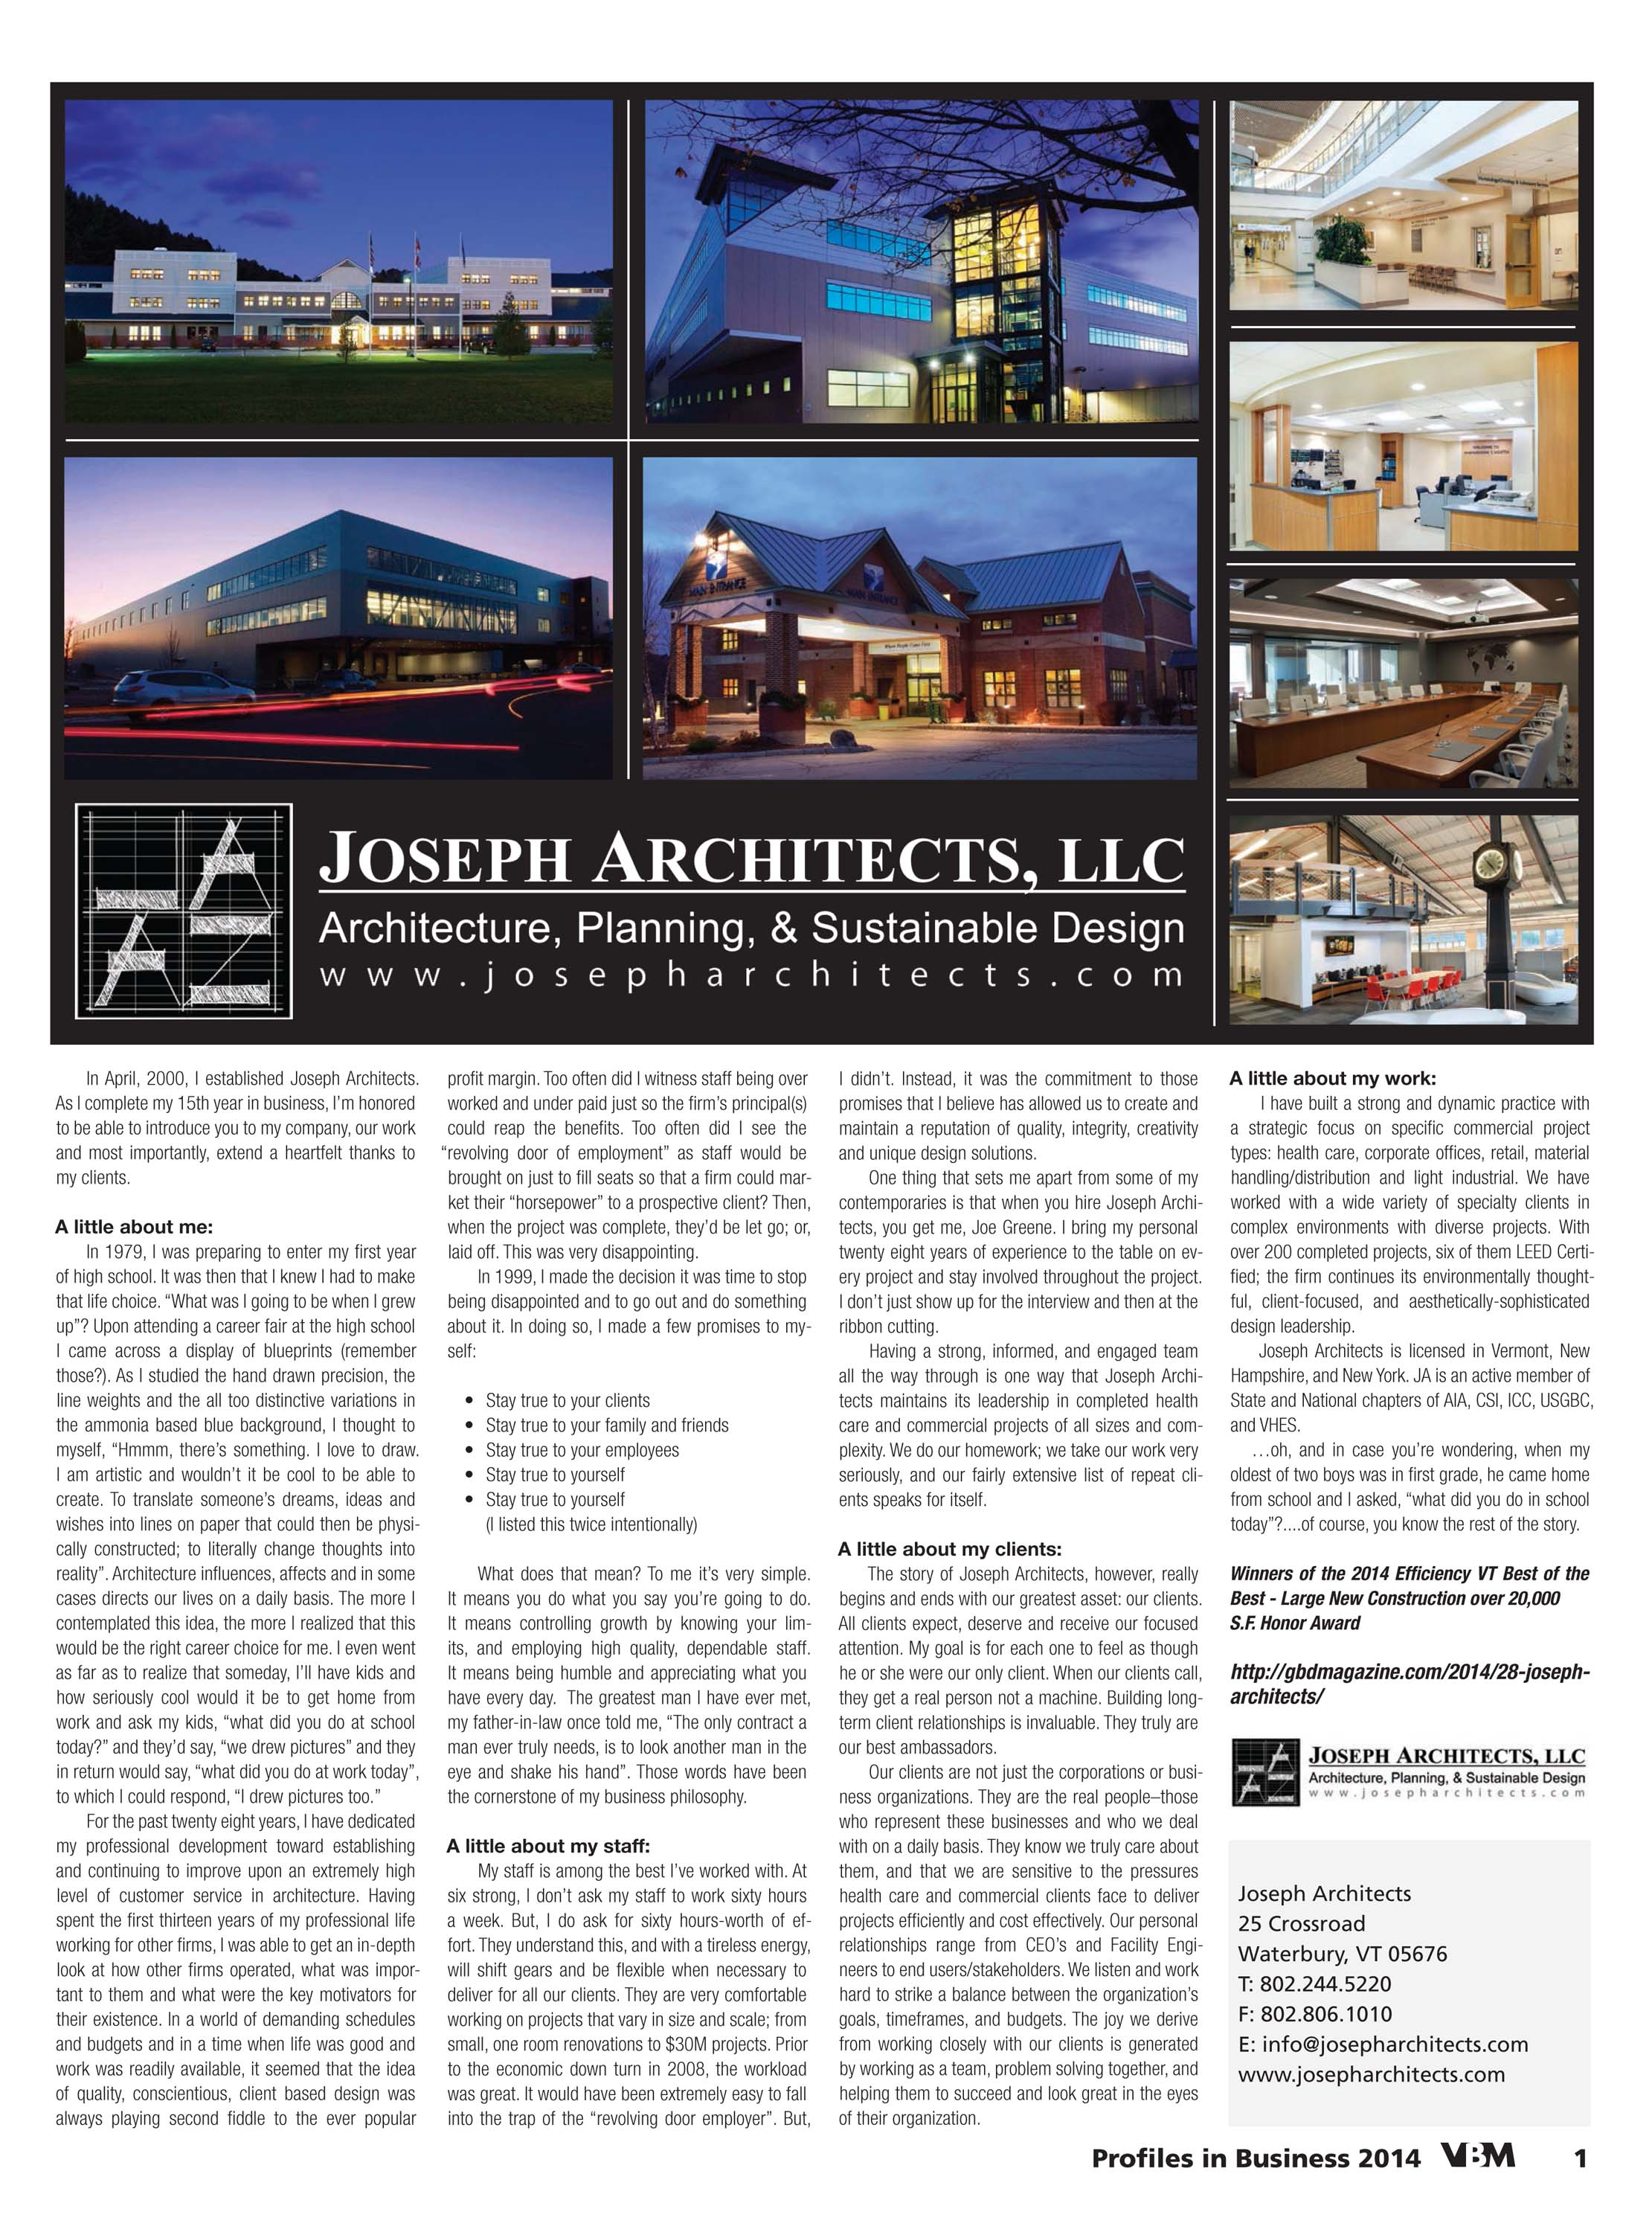 Joseph Architects_Profile2014_Final.jpg